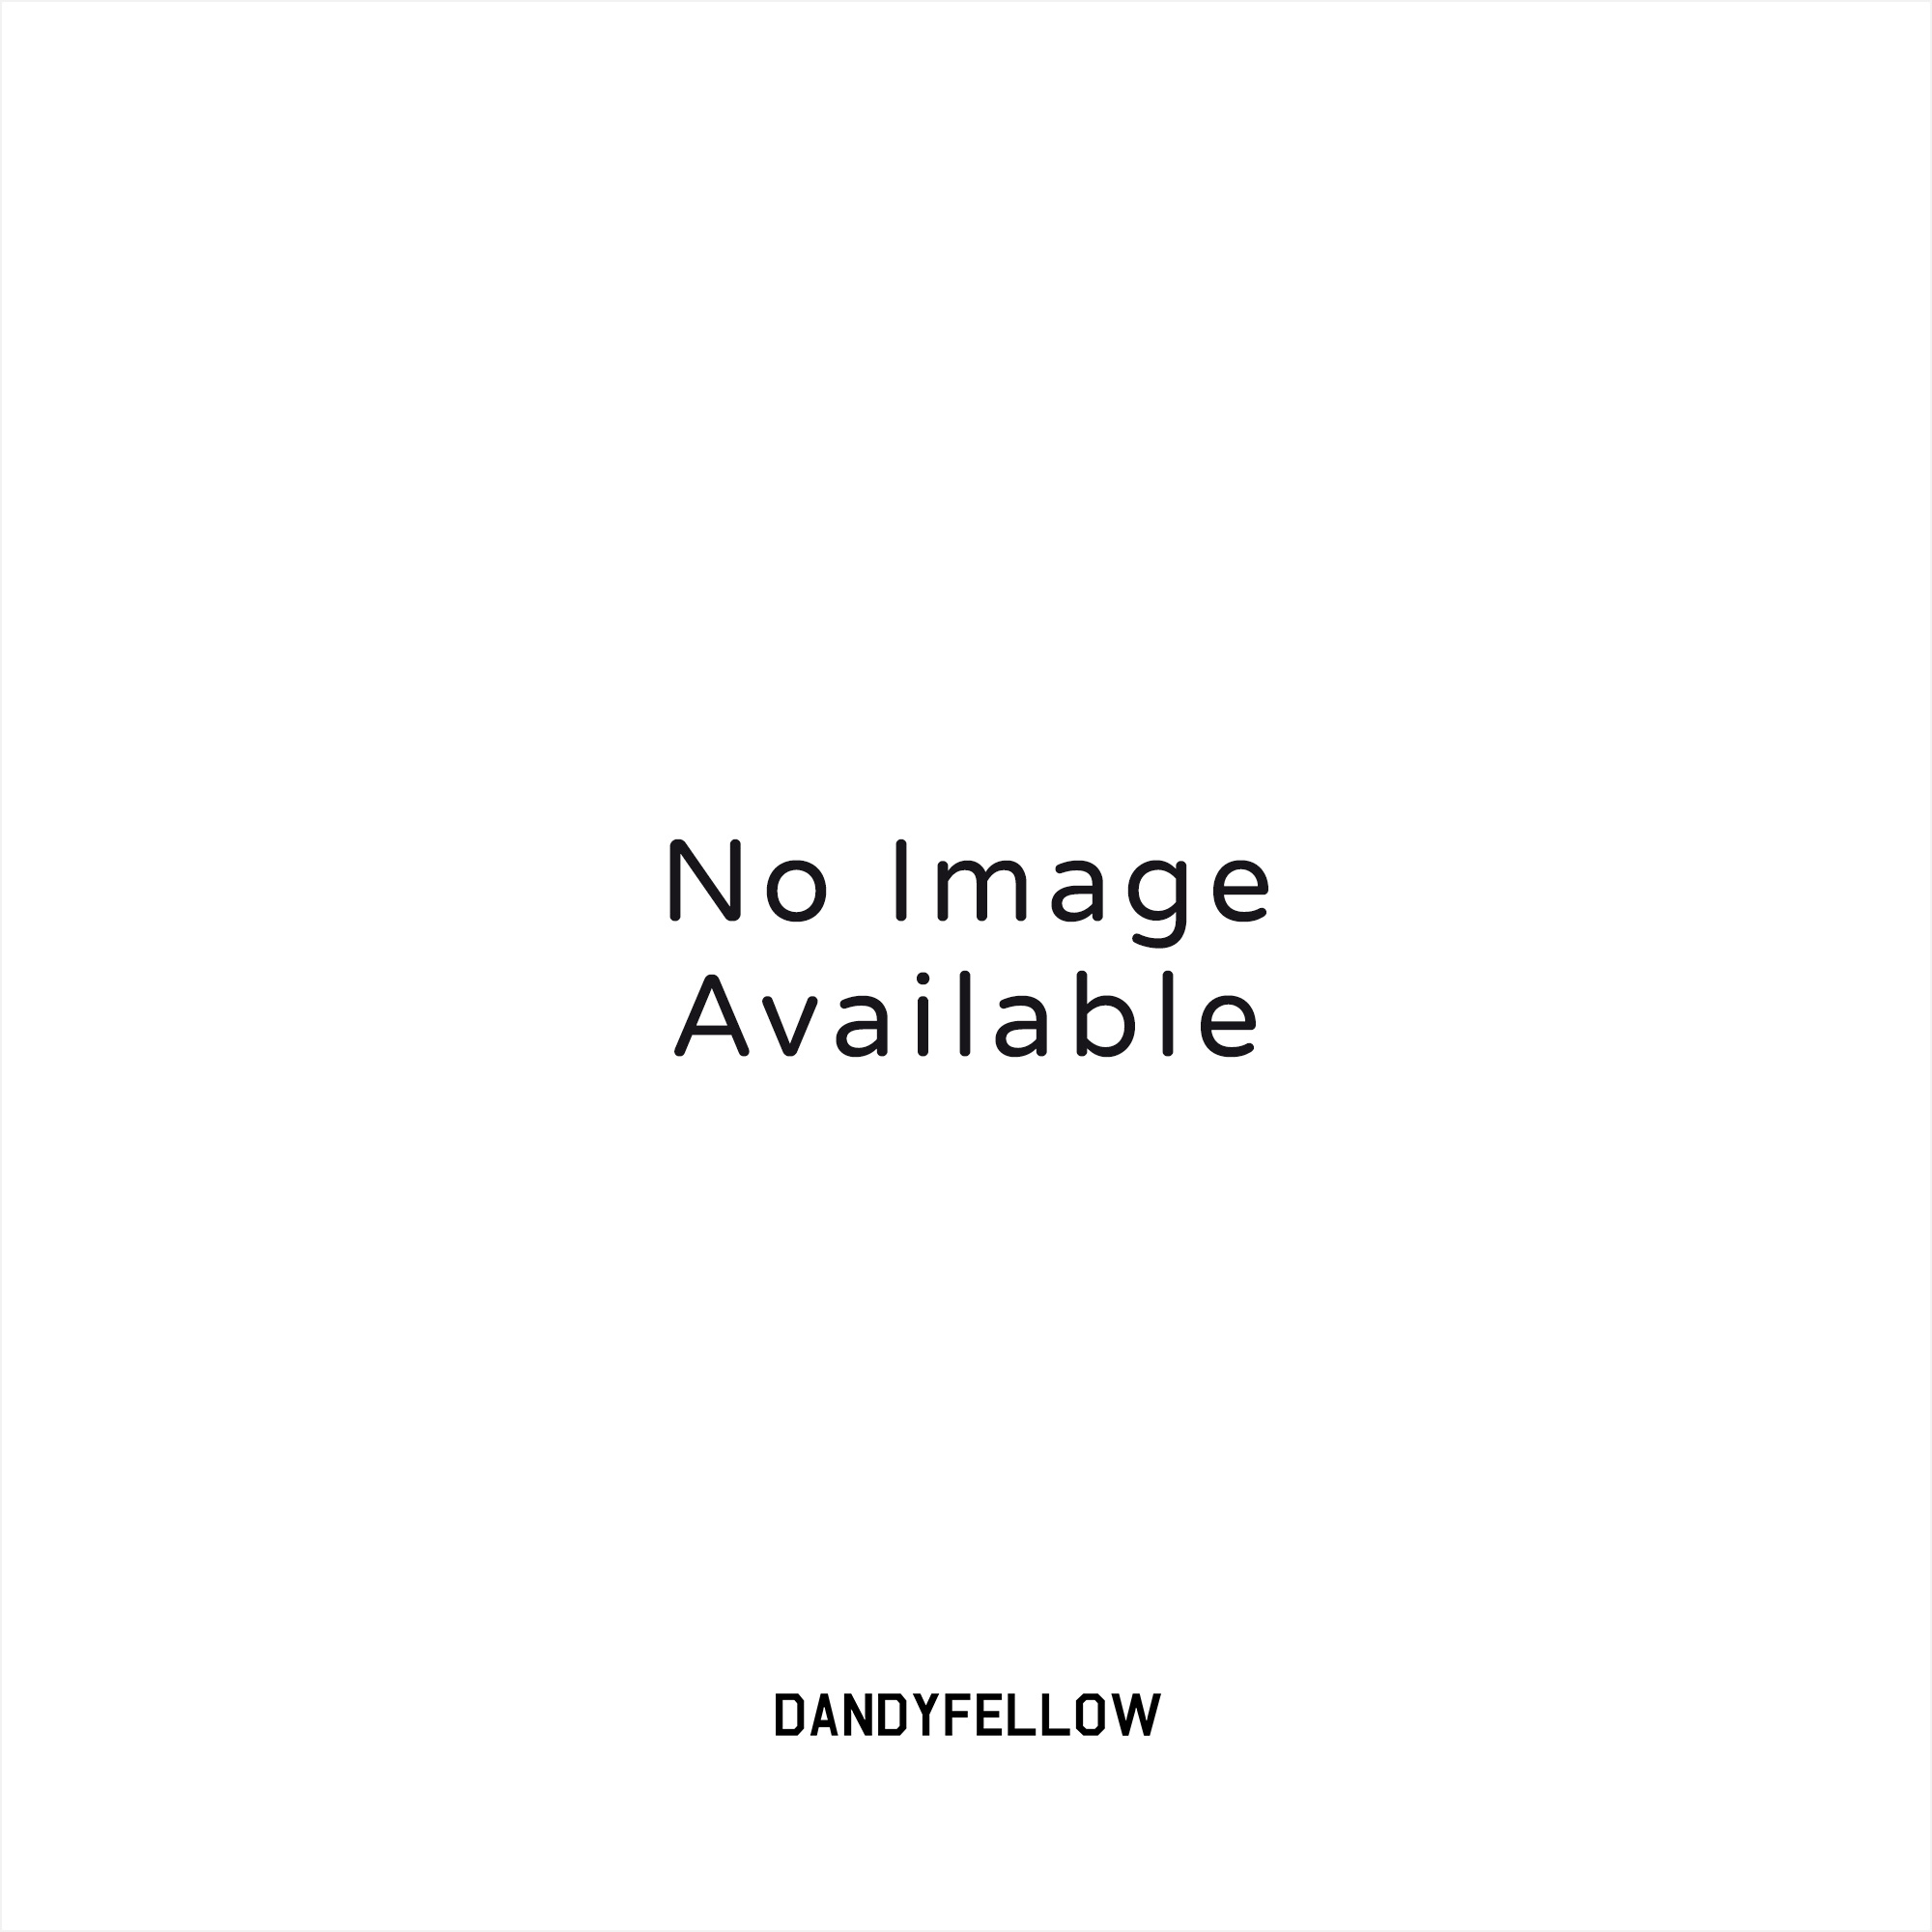 dc77fbe2e Fred Perry Authentic Tennis Bomber Jacket (Black) - J3174-157